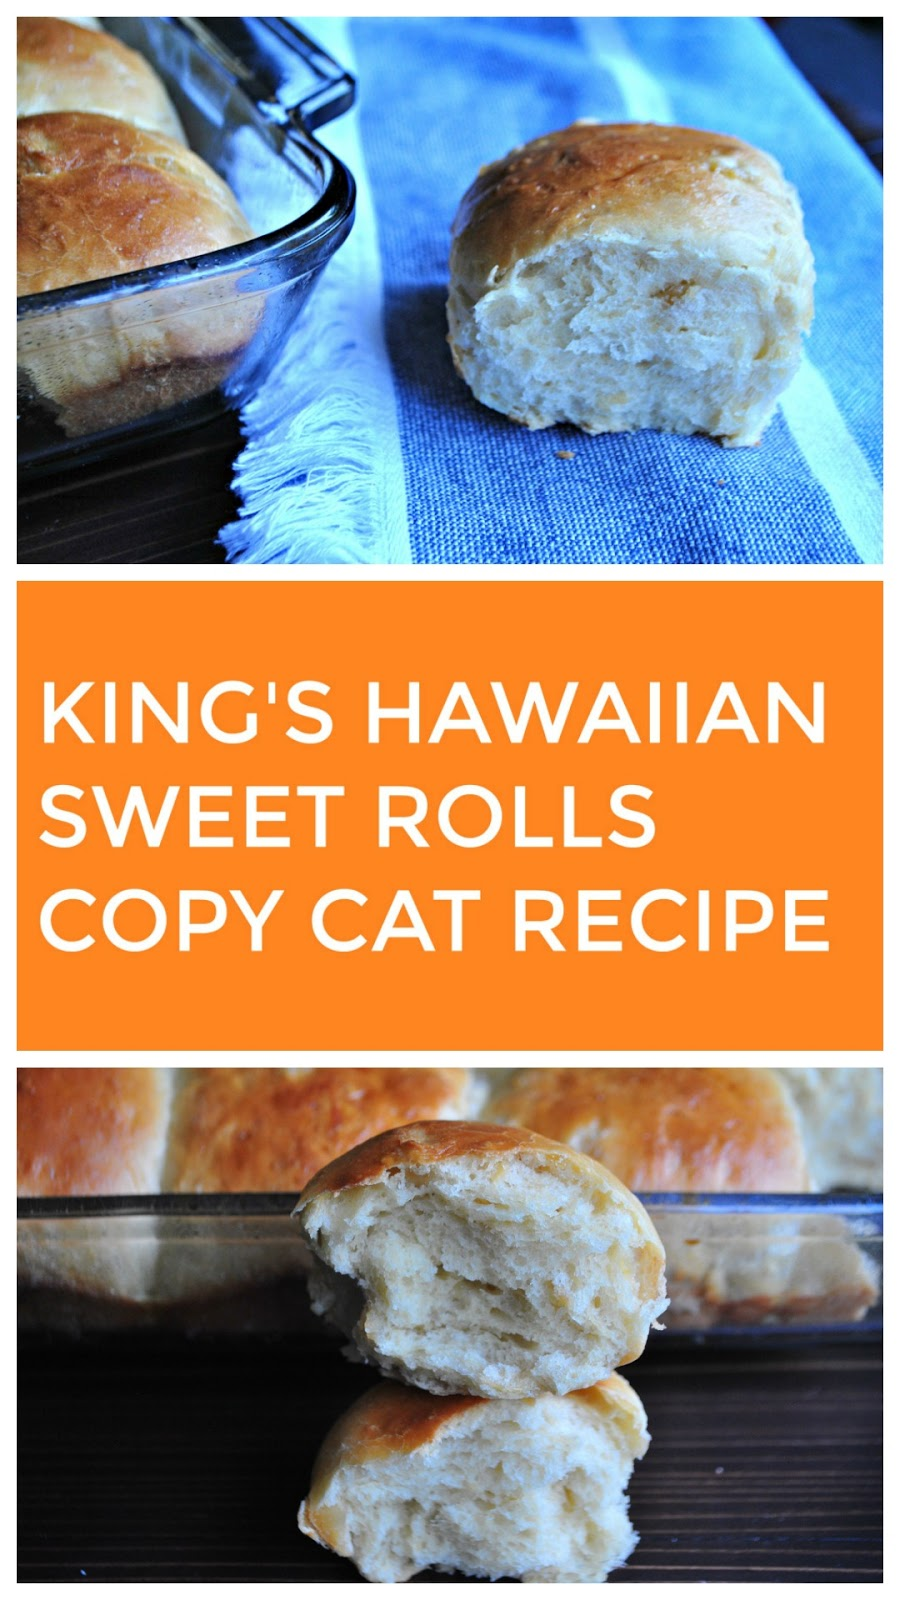 King's Hawaiian Rolls copy cat recipe that brings an American dinner favorite to your table as the perfect side.